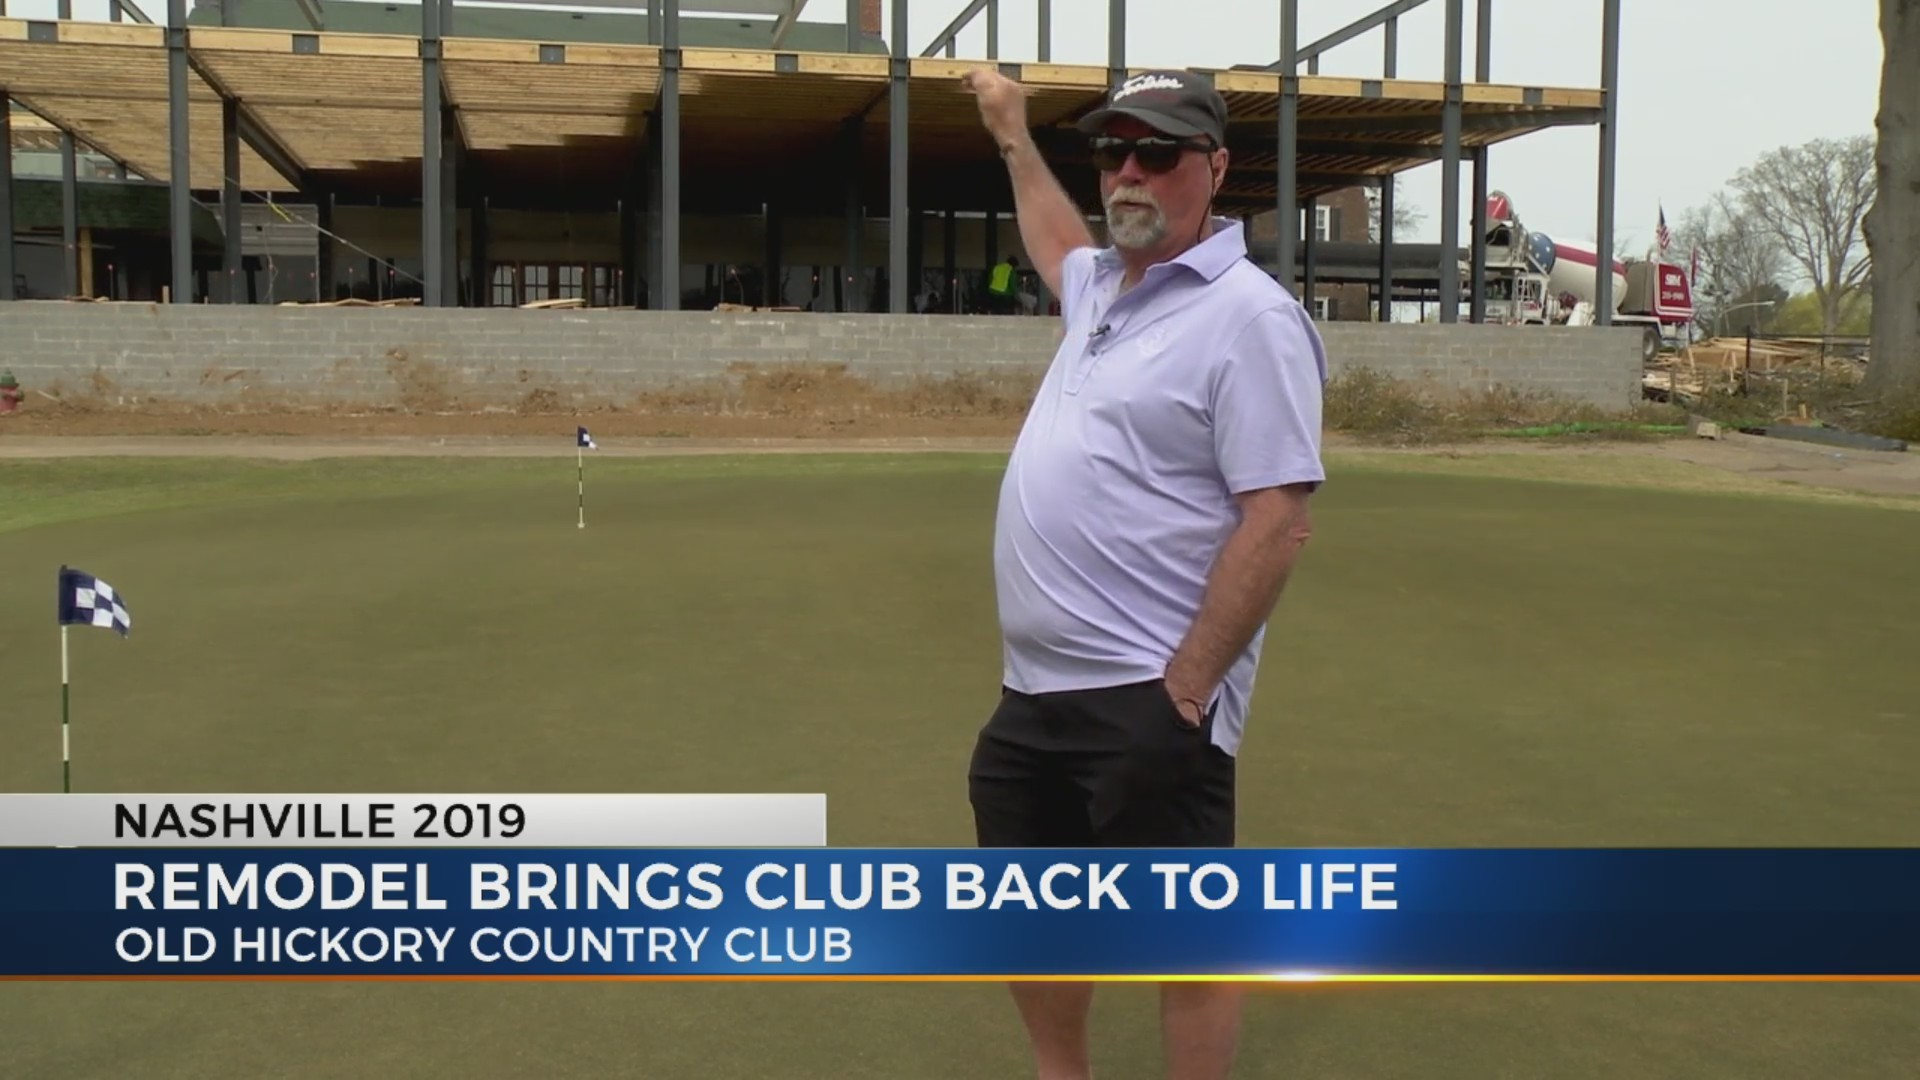 New Owners Give Old Hickory Country Club A Facelift